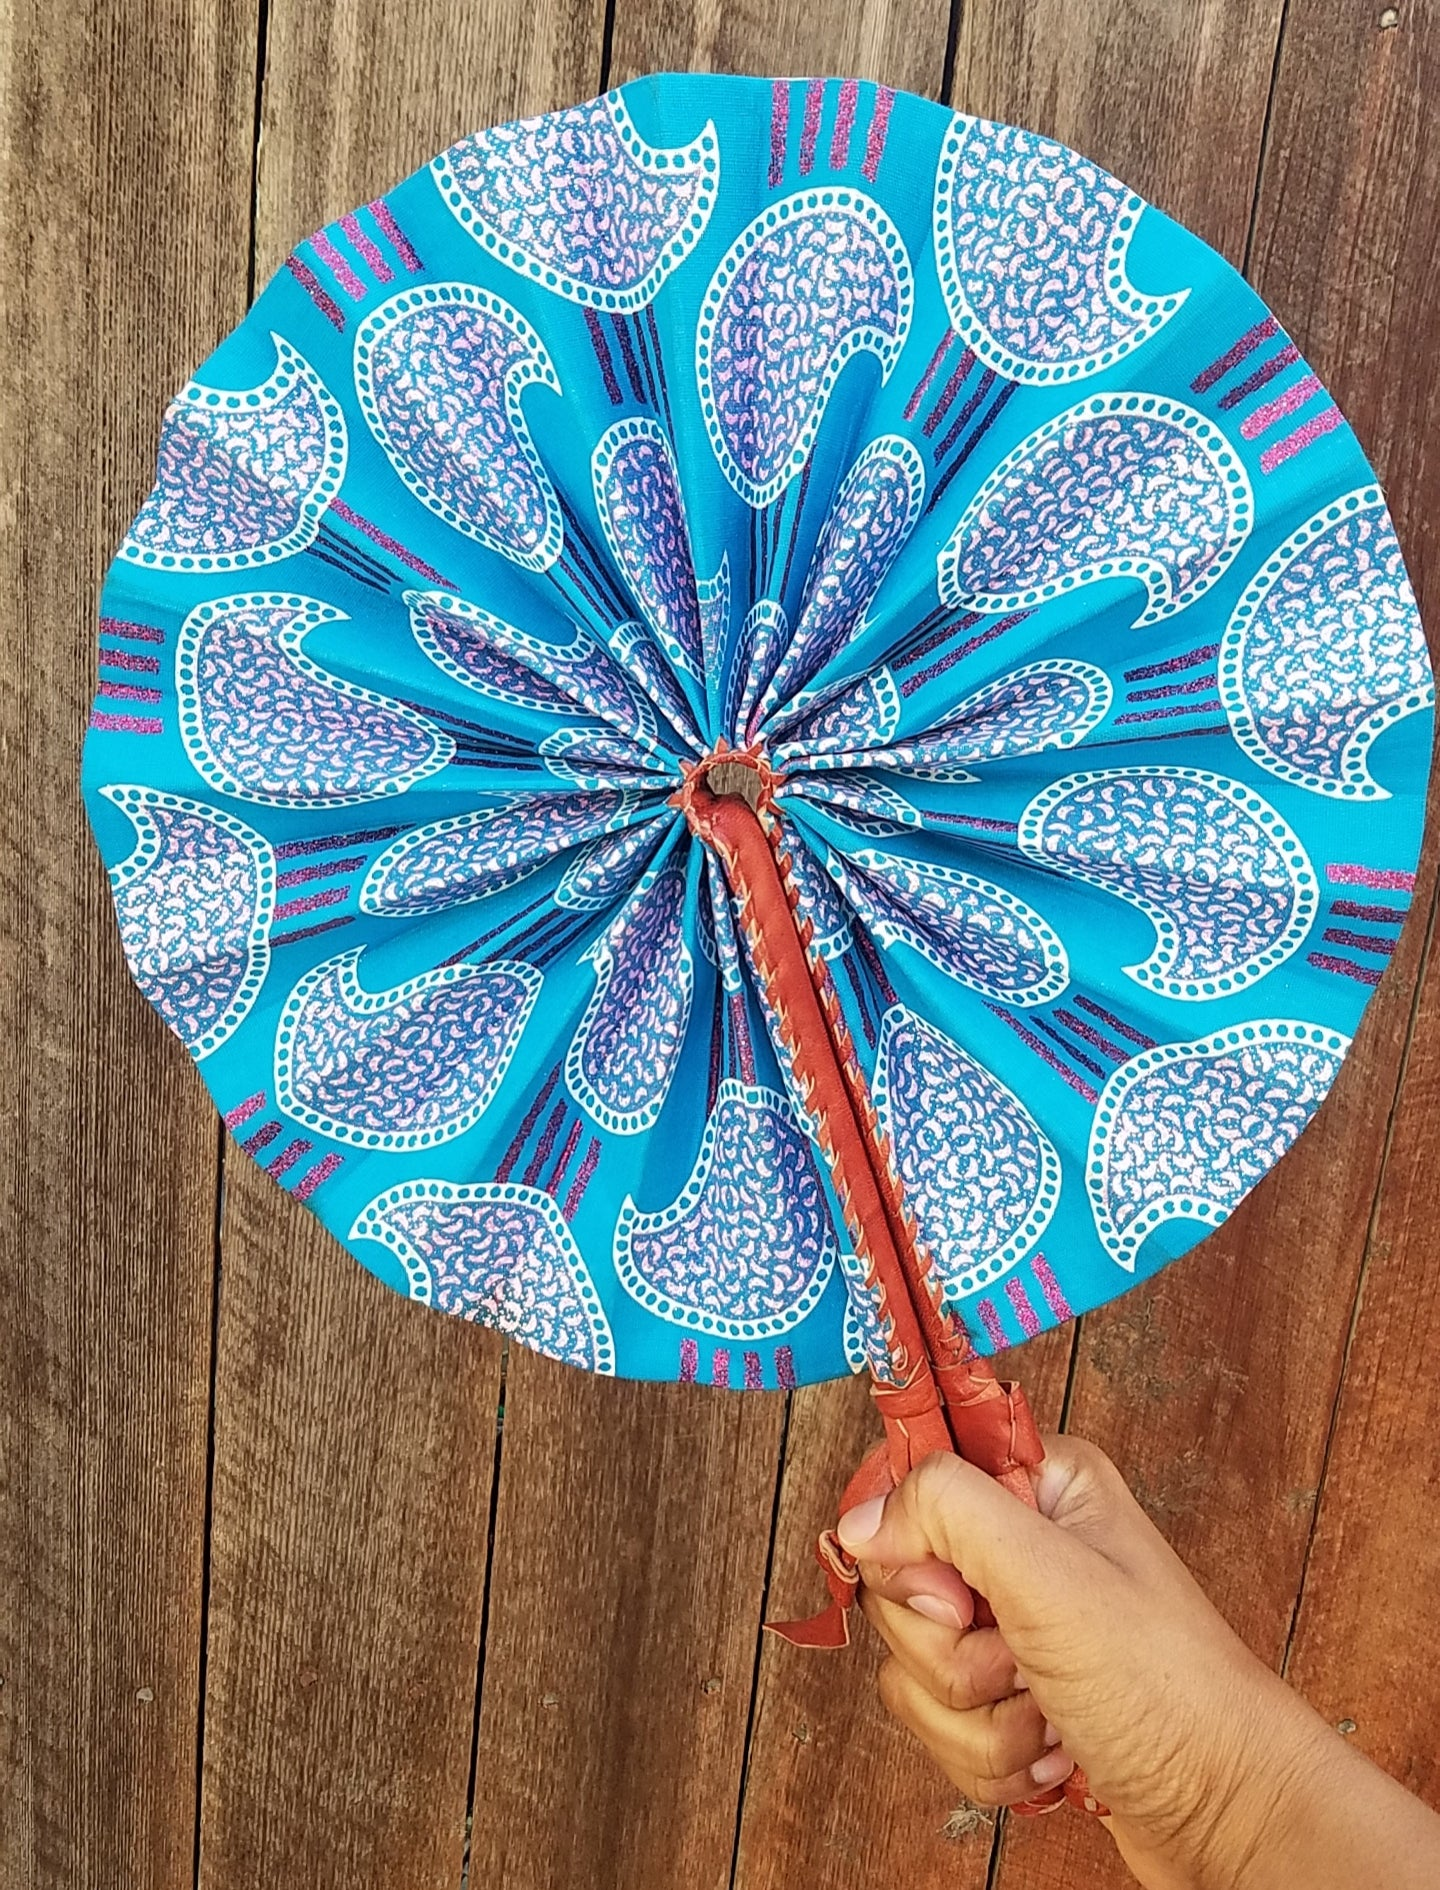 Handheld Fan in Turquoise Pink